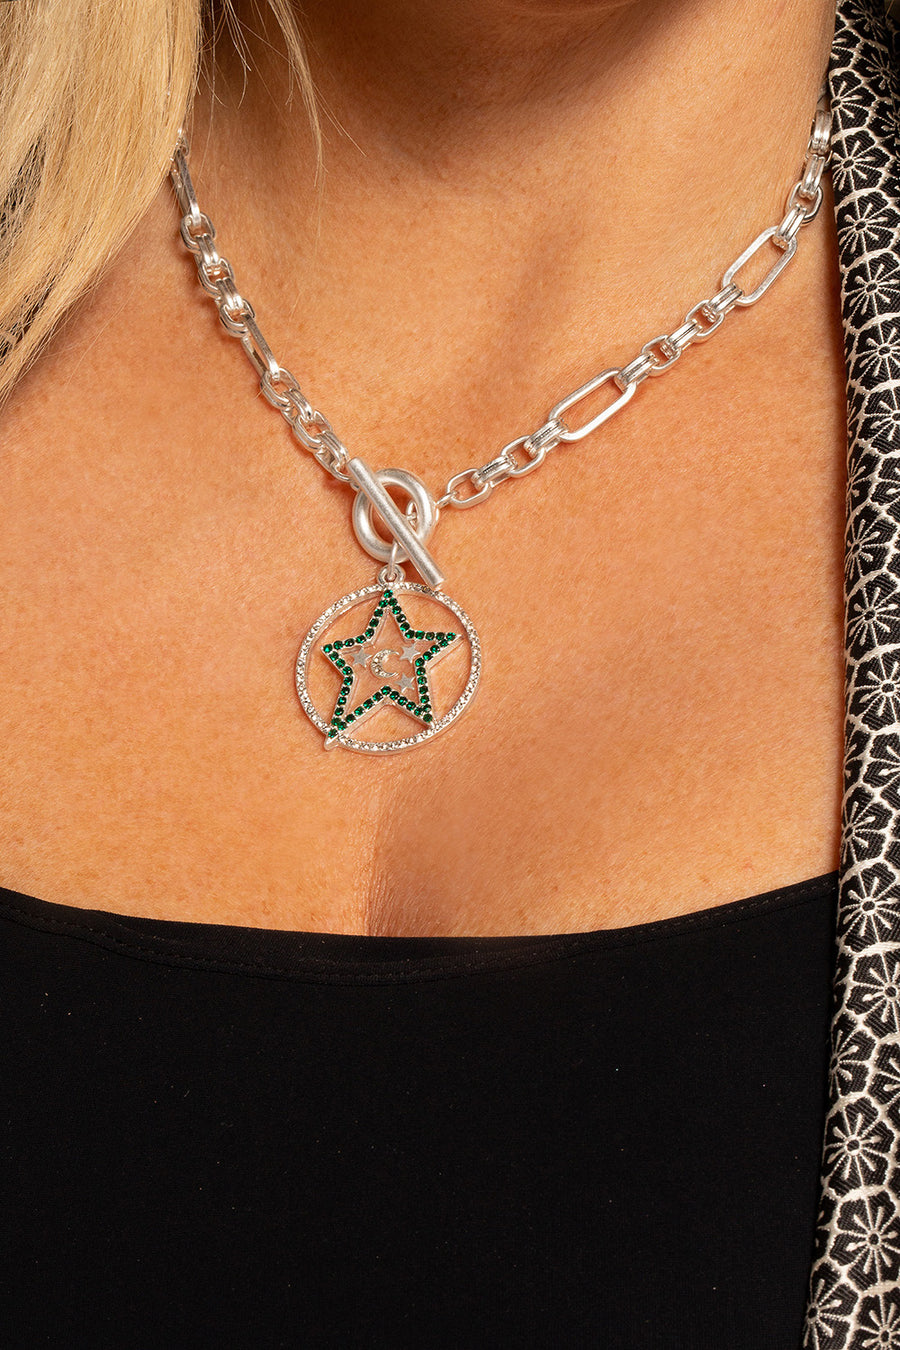 Kate Thornton 'Star and Moon' Silver T-Bar Necklace